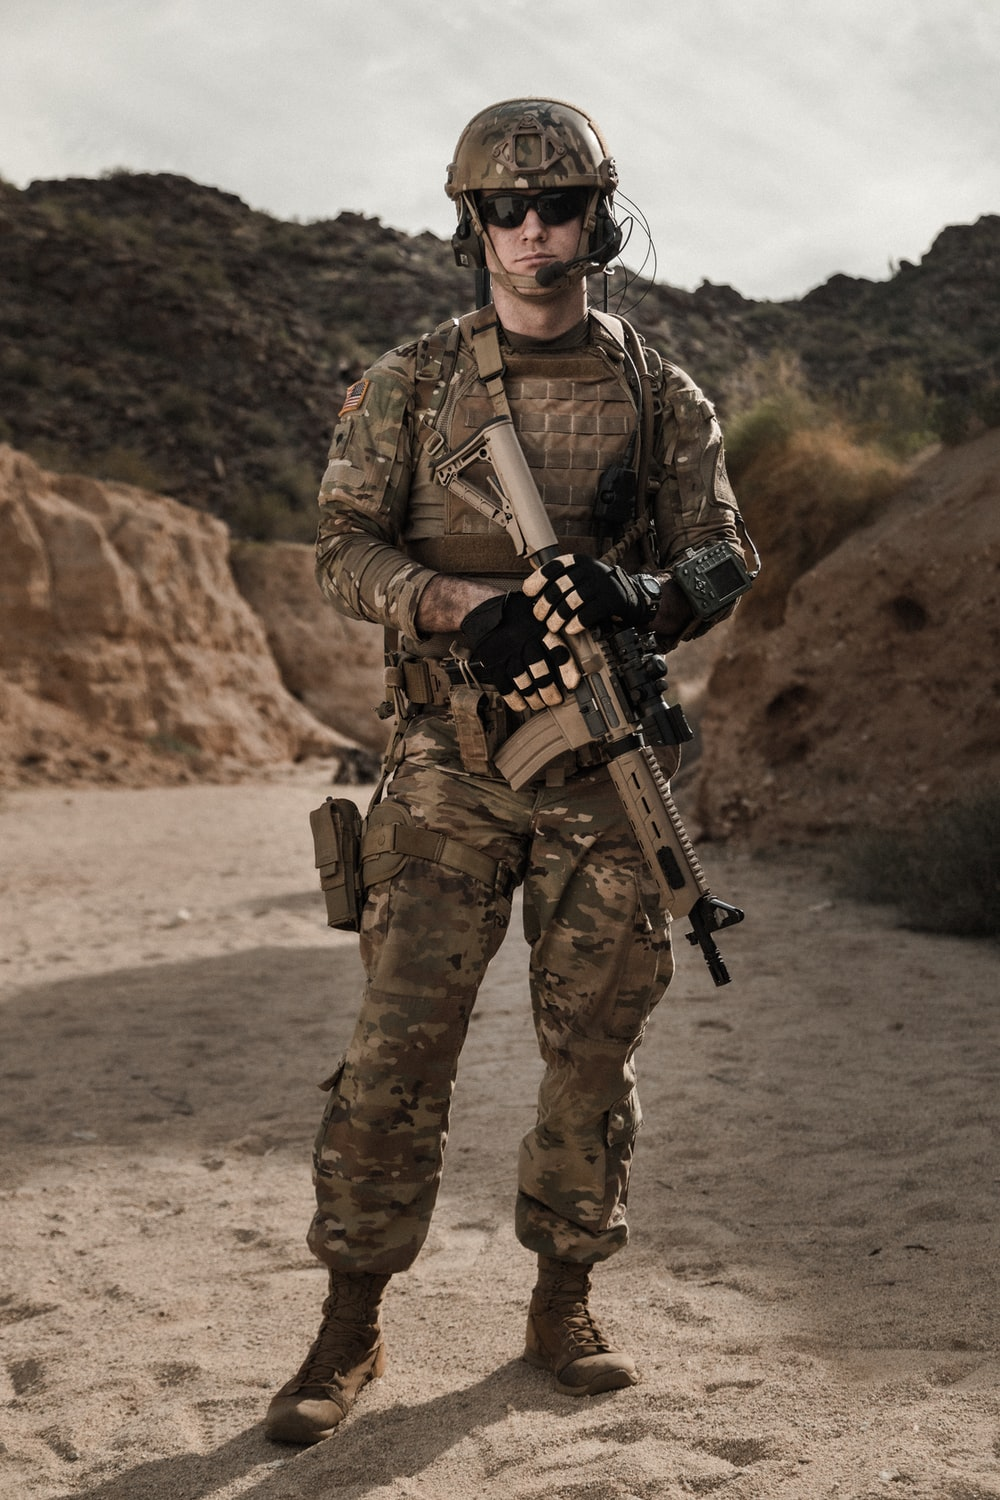 man in brown and black camouflage uniform holding rifle